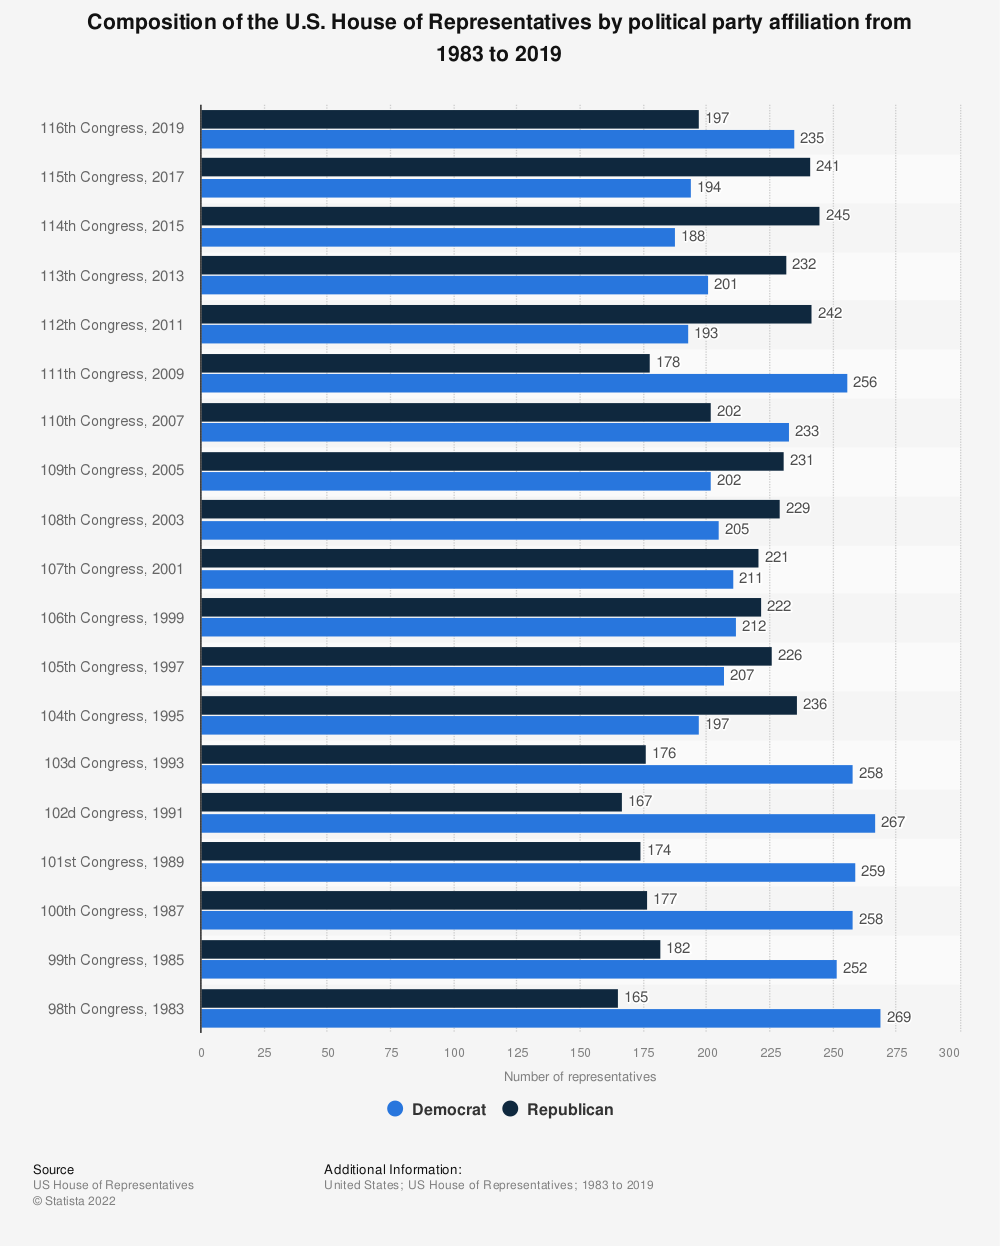 Statistic: Composition of the U.S. House of Representatives by political party affiliation from 1983 to 2019 | Statista